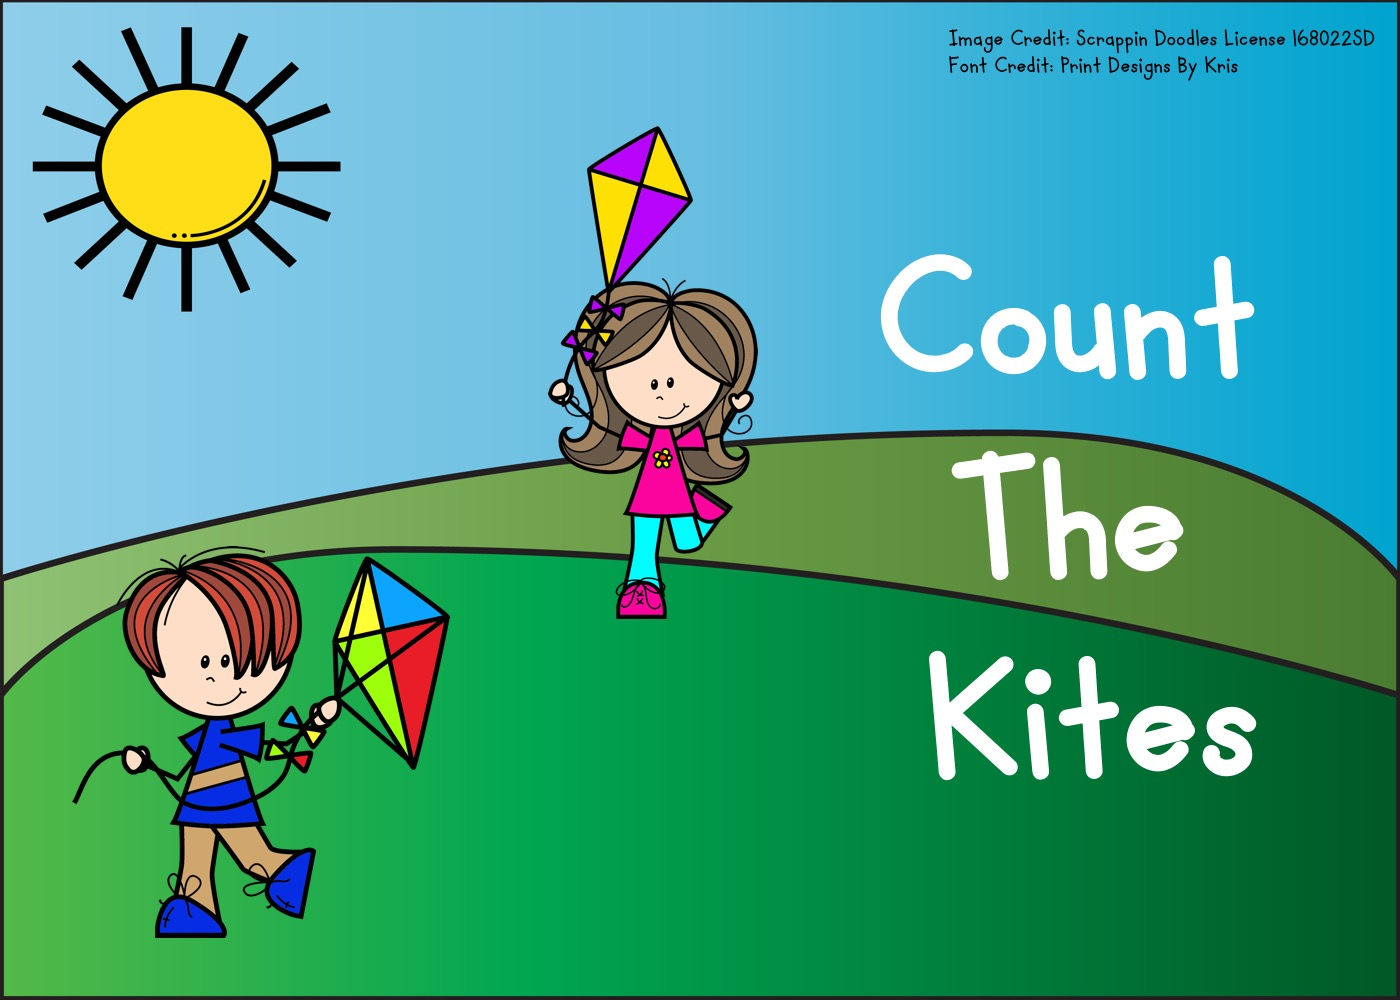 Fun Kite Printables for Preschool and Kindergarten   Spring Themed Weather Games   Hands On Math Homeschool Activities   Kids Classroom Center Ideas and Worksheets #FreePrintableWorksheetsForKids #kite #spring #weather #counting